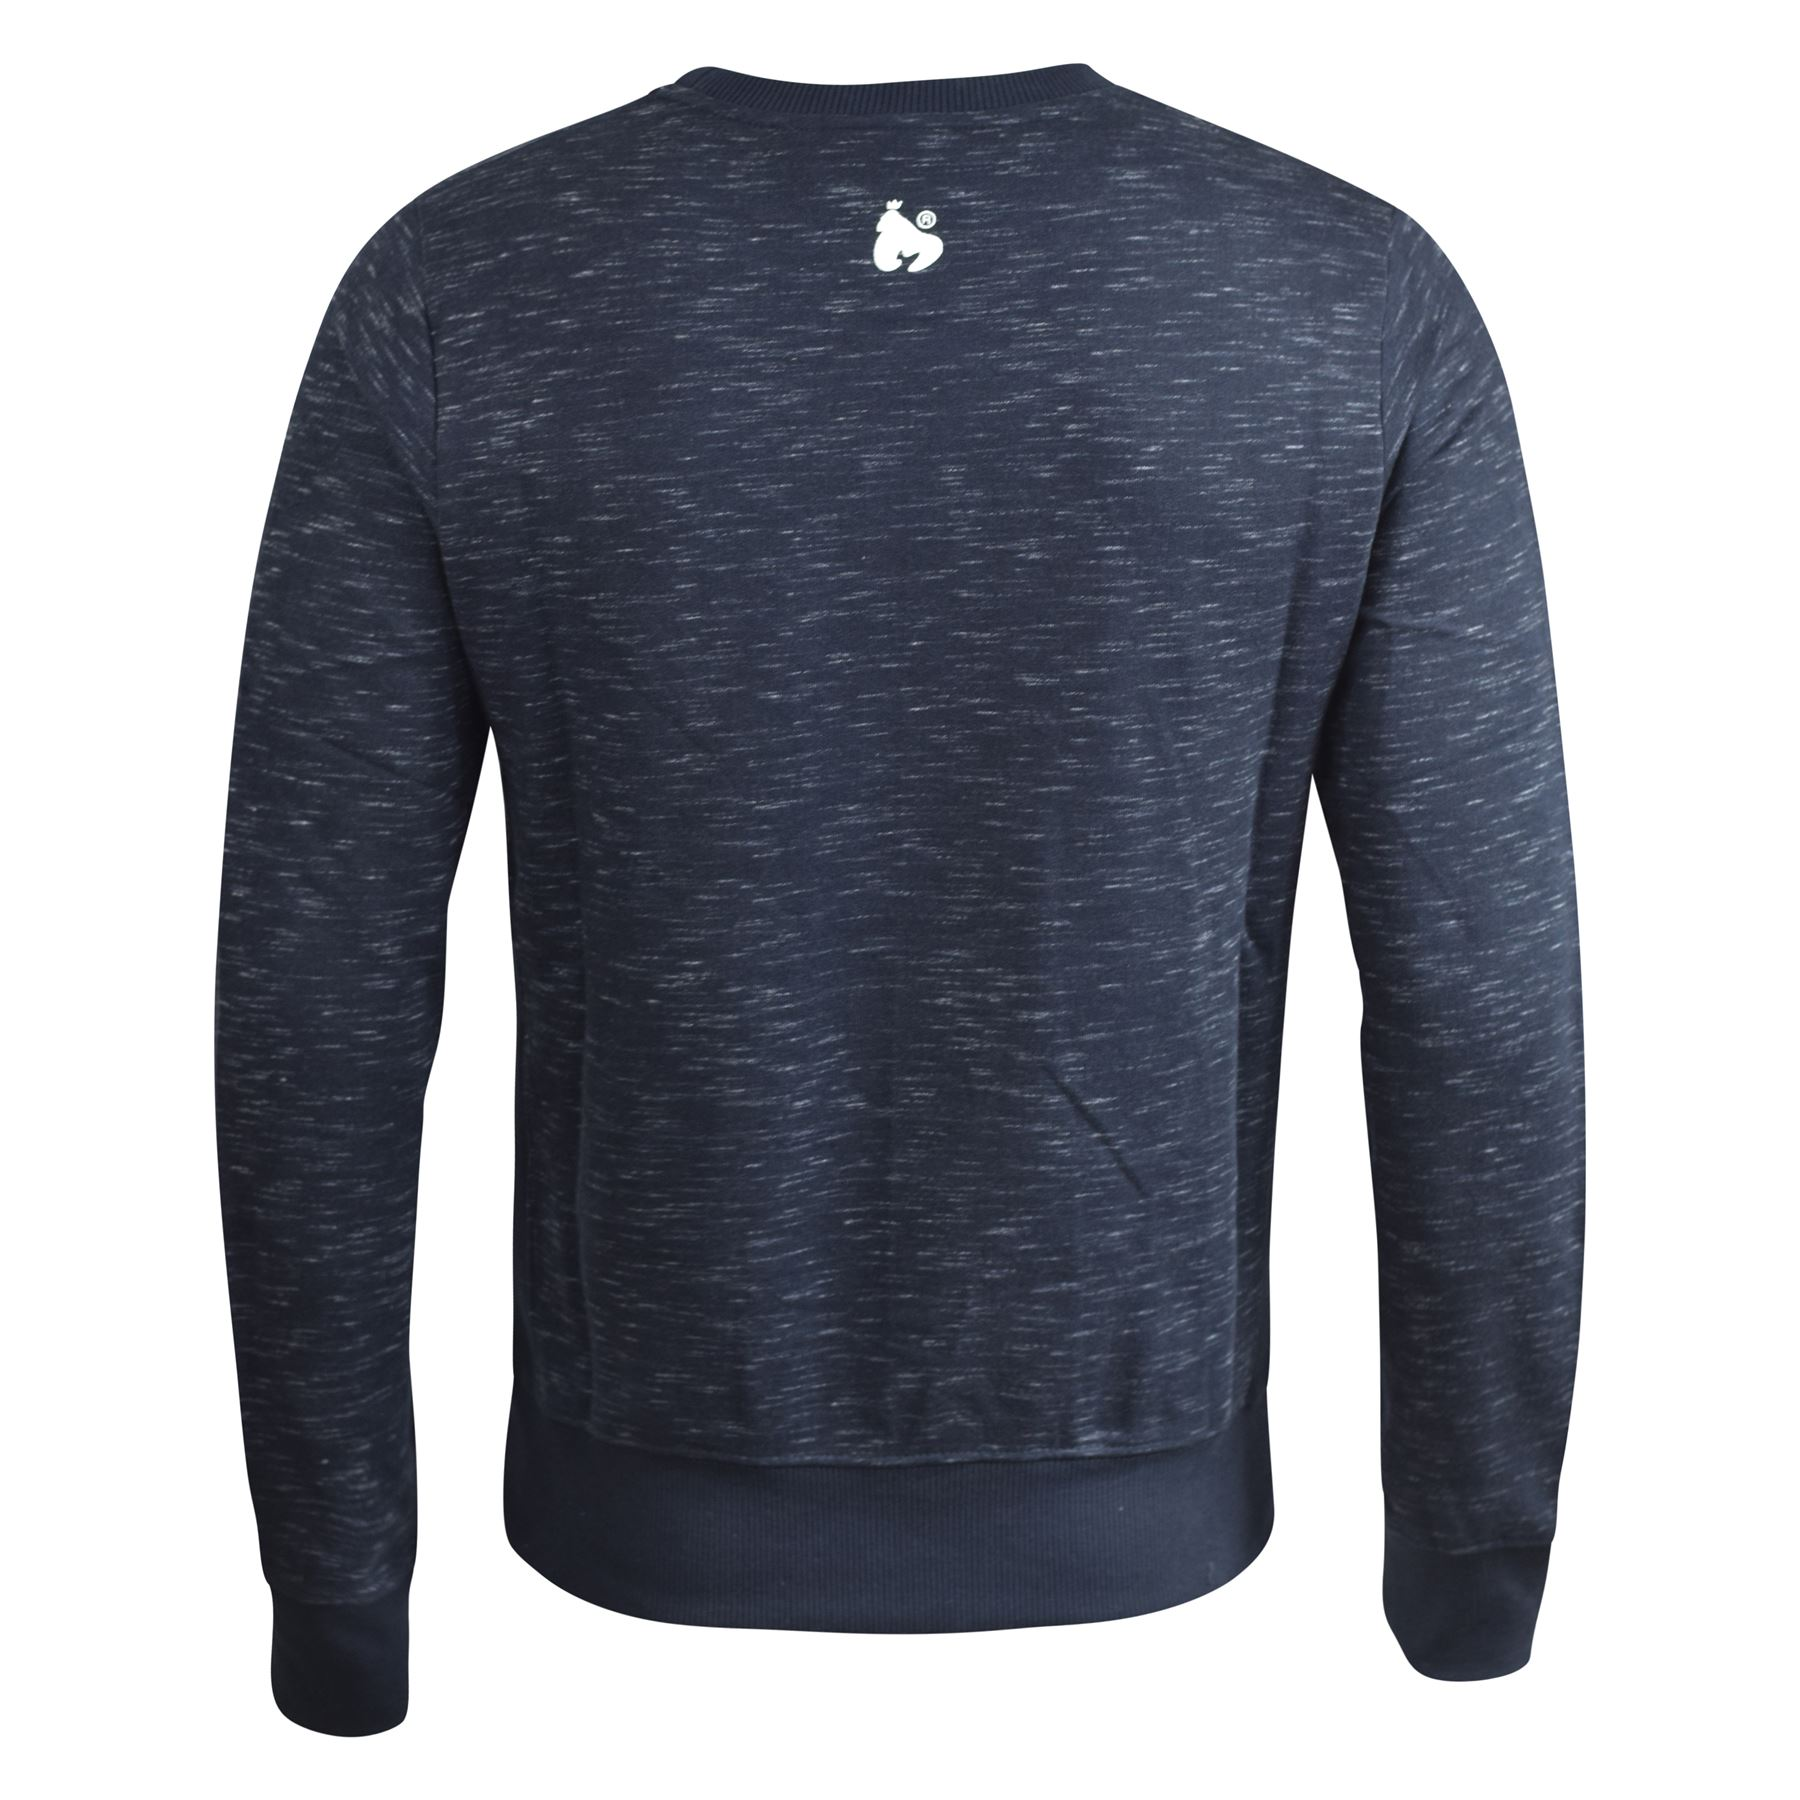 Mens-Jumper-Money-Clothing-Hardway-Crew-Neck-Sweatshirt thumbnail 7